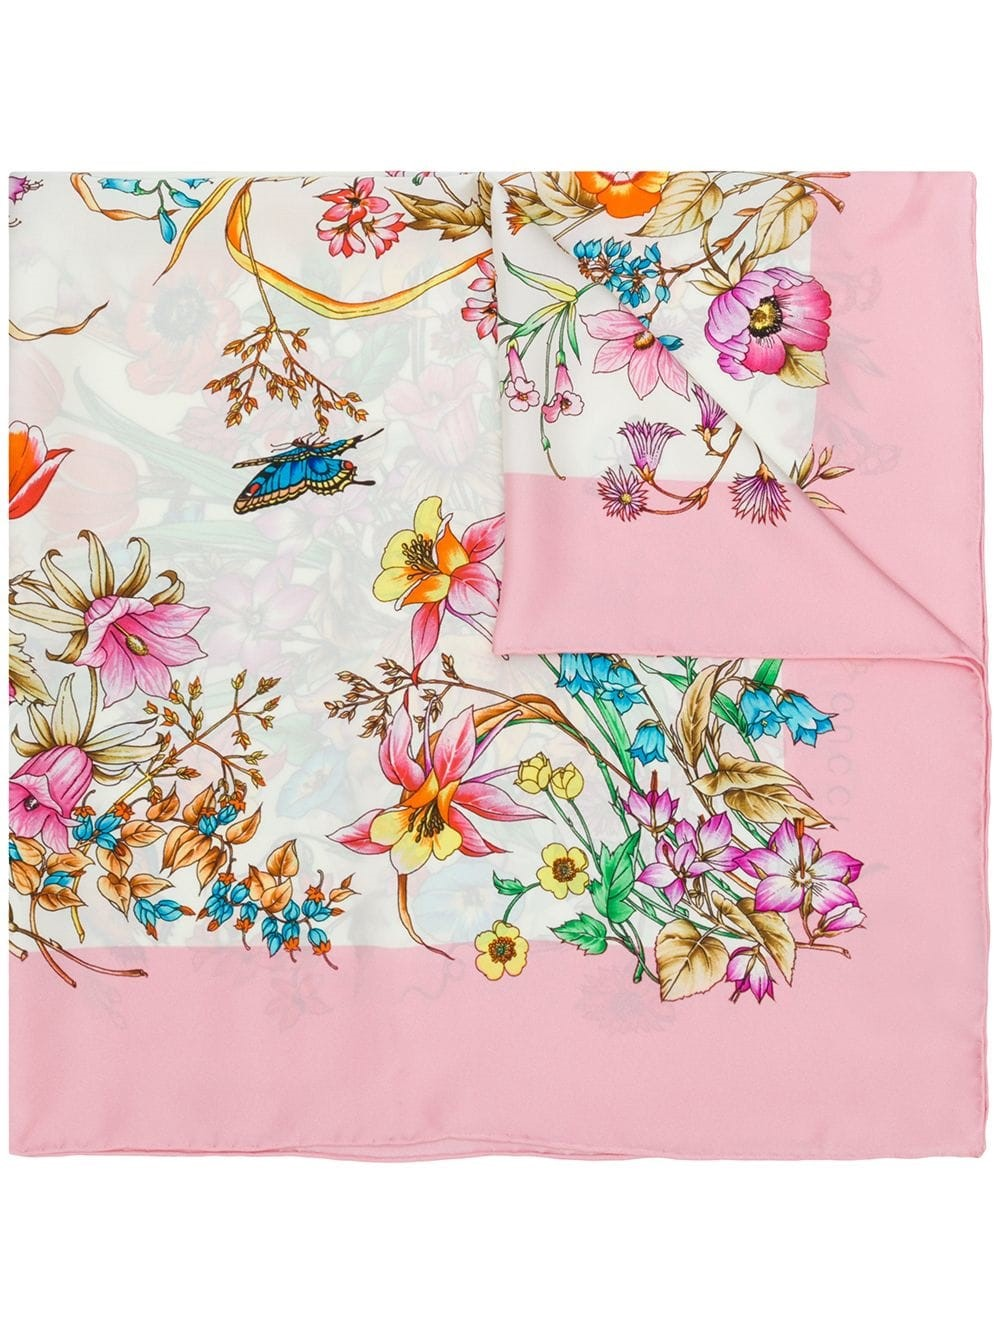 e7820e49c44669 gucci FLORAL PRINT SCARF available on montiboutique.com - 25132